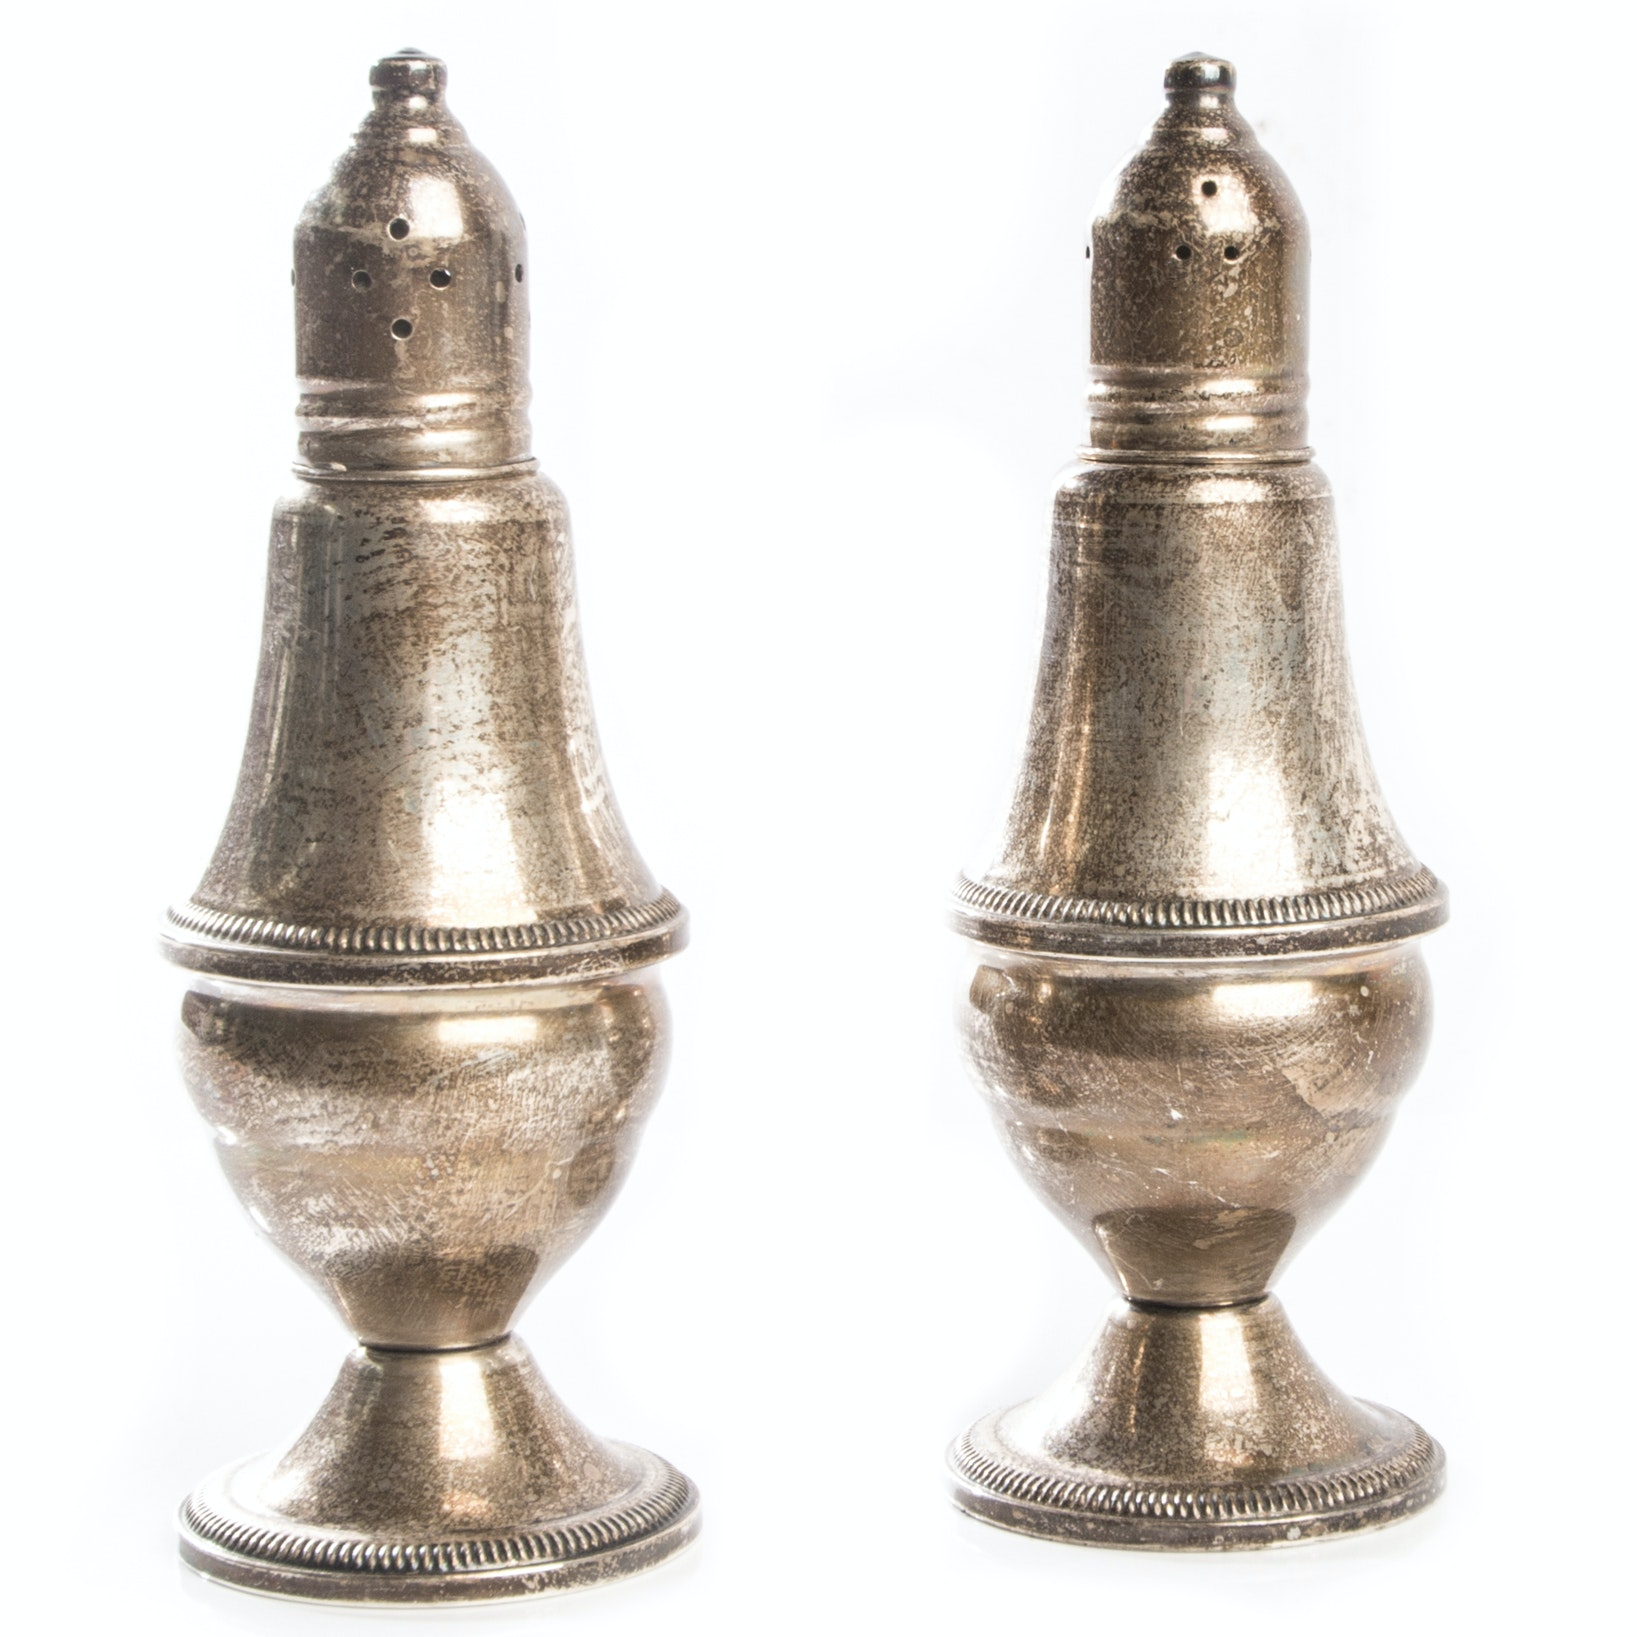 Vintage Weighted Sterling Silver Salt and Pepper Shakers by Duchin Creation